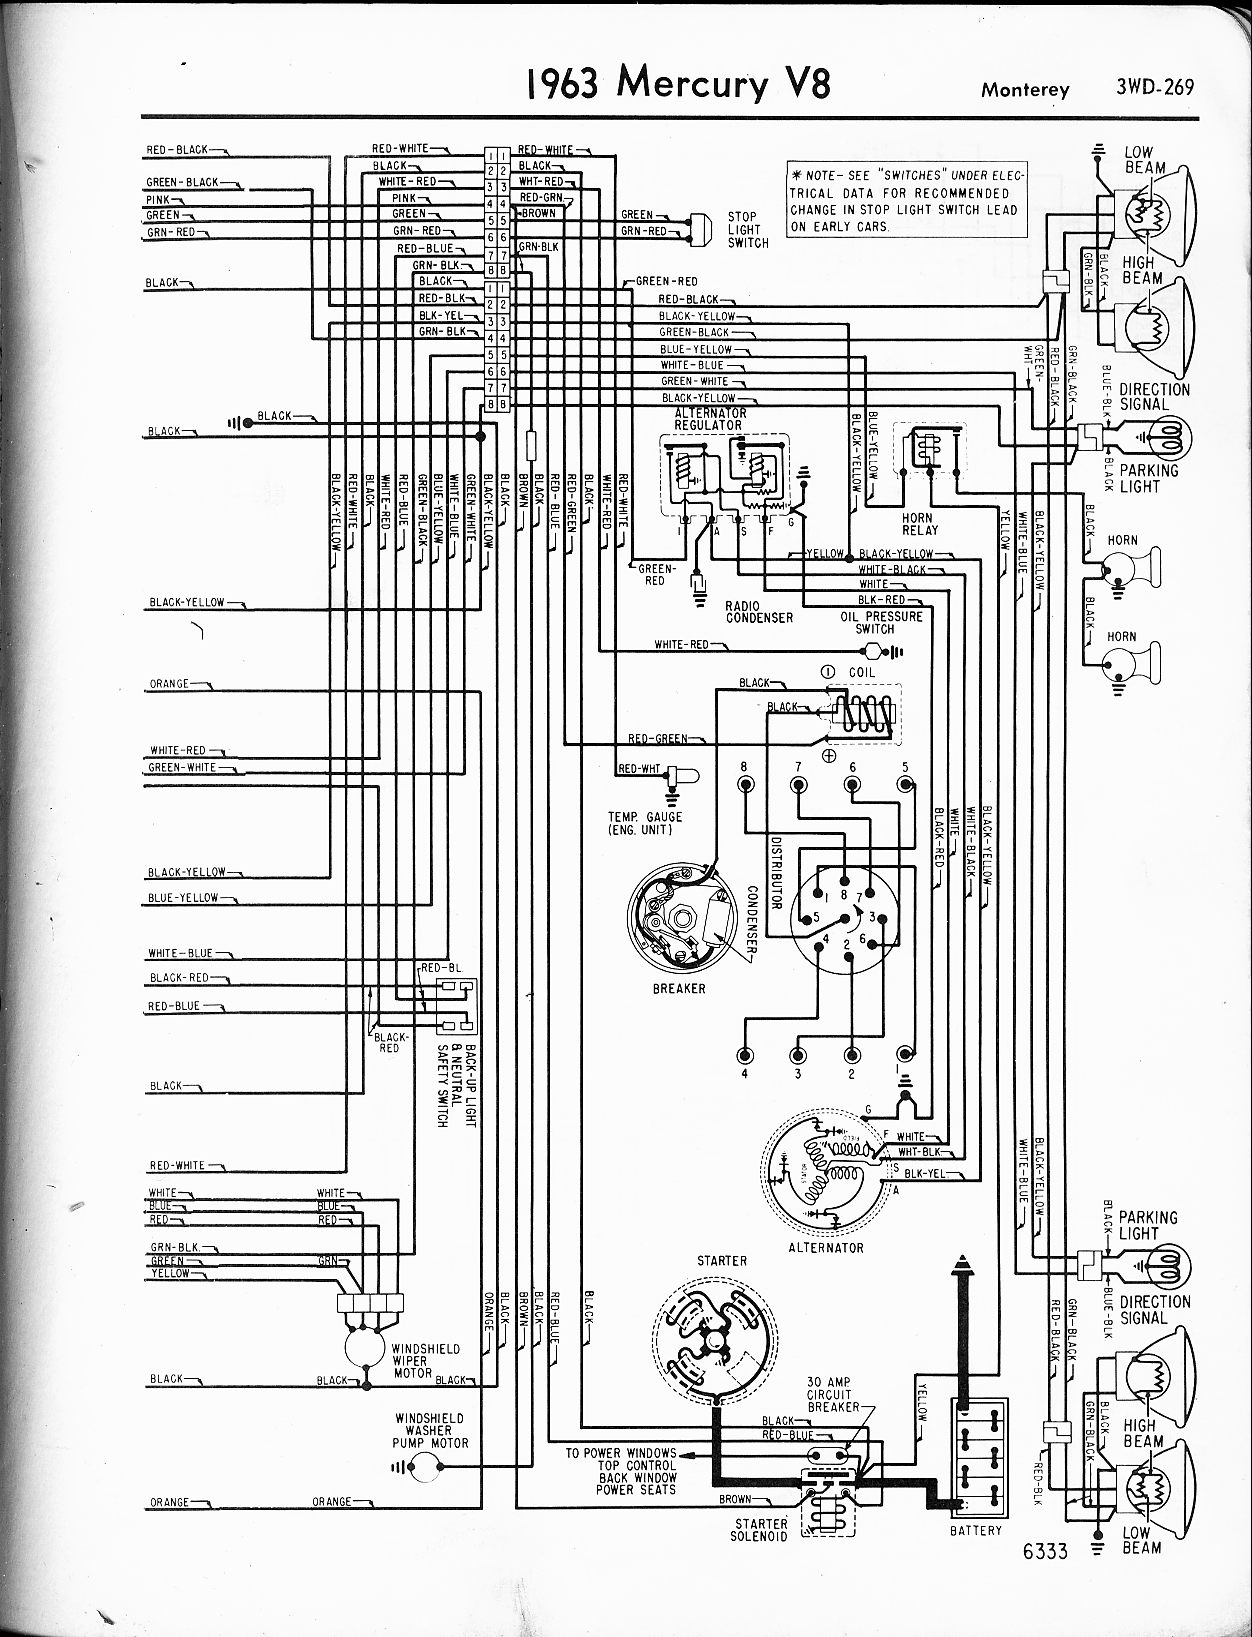 Wiring Diagram 64 Mercury Montclair And Schematics 1959 Triumph Tr3 Home 1964 V8 Monterey Parklane Left Page